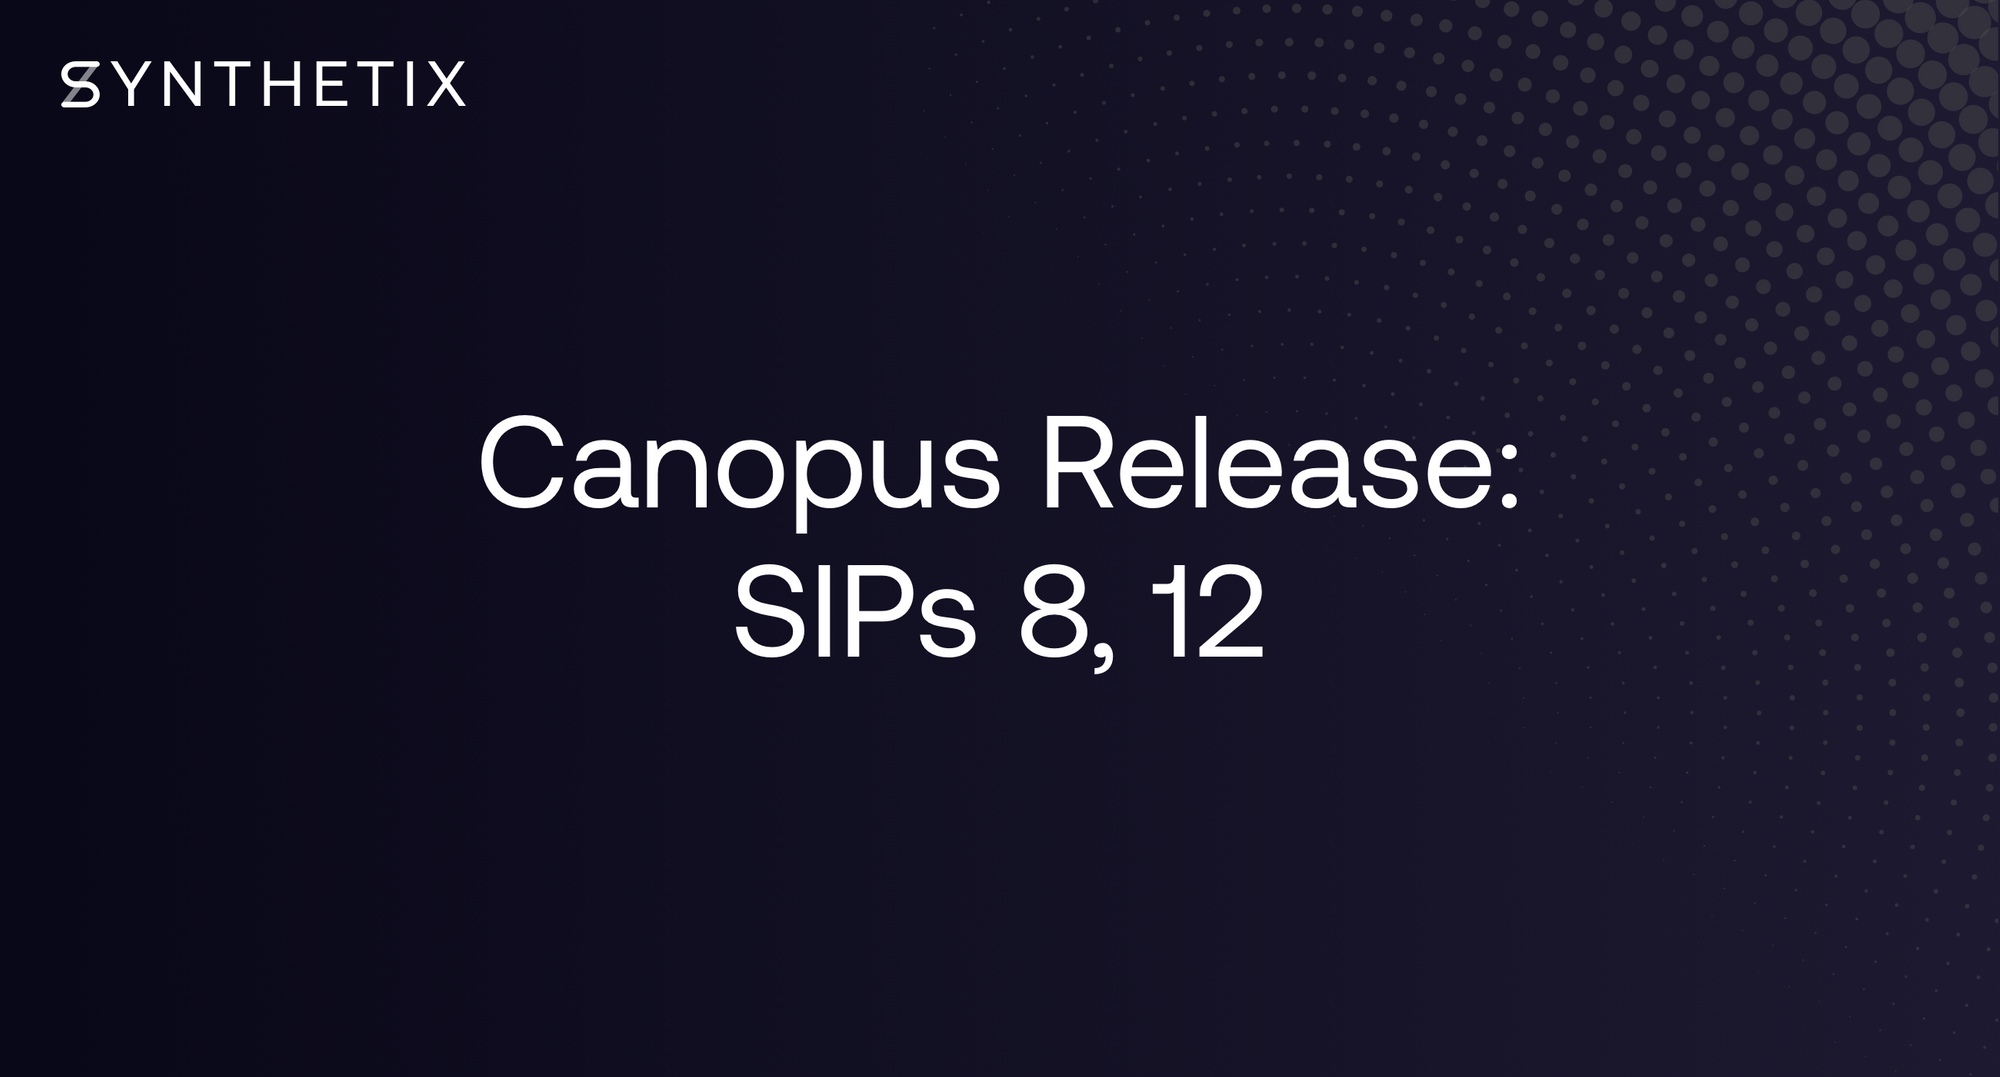 The Canopus Release